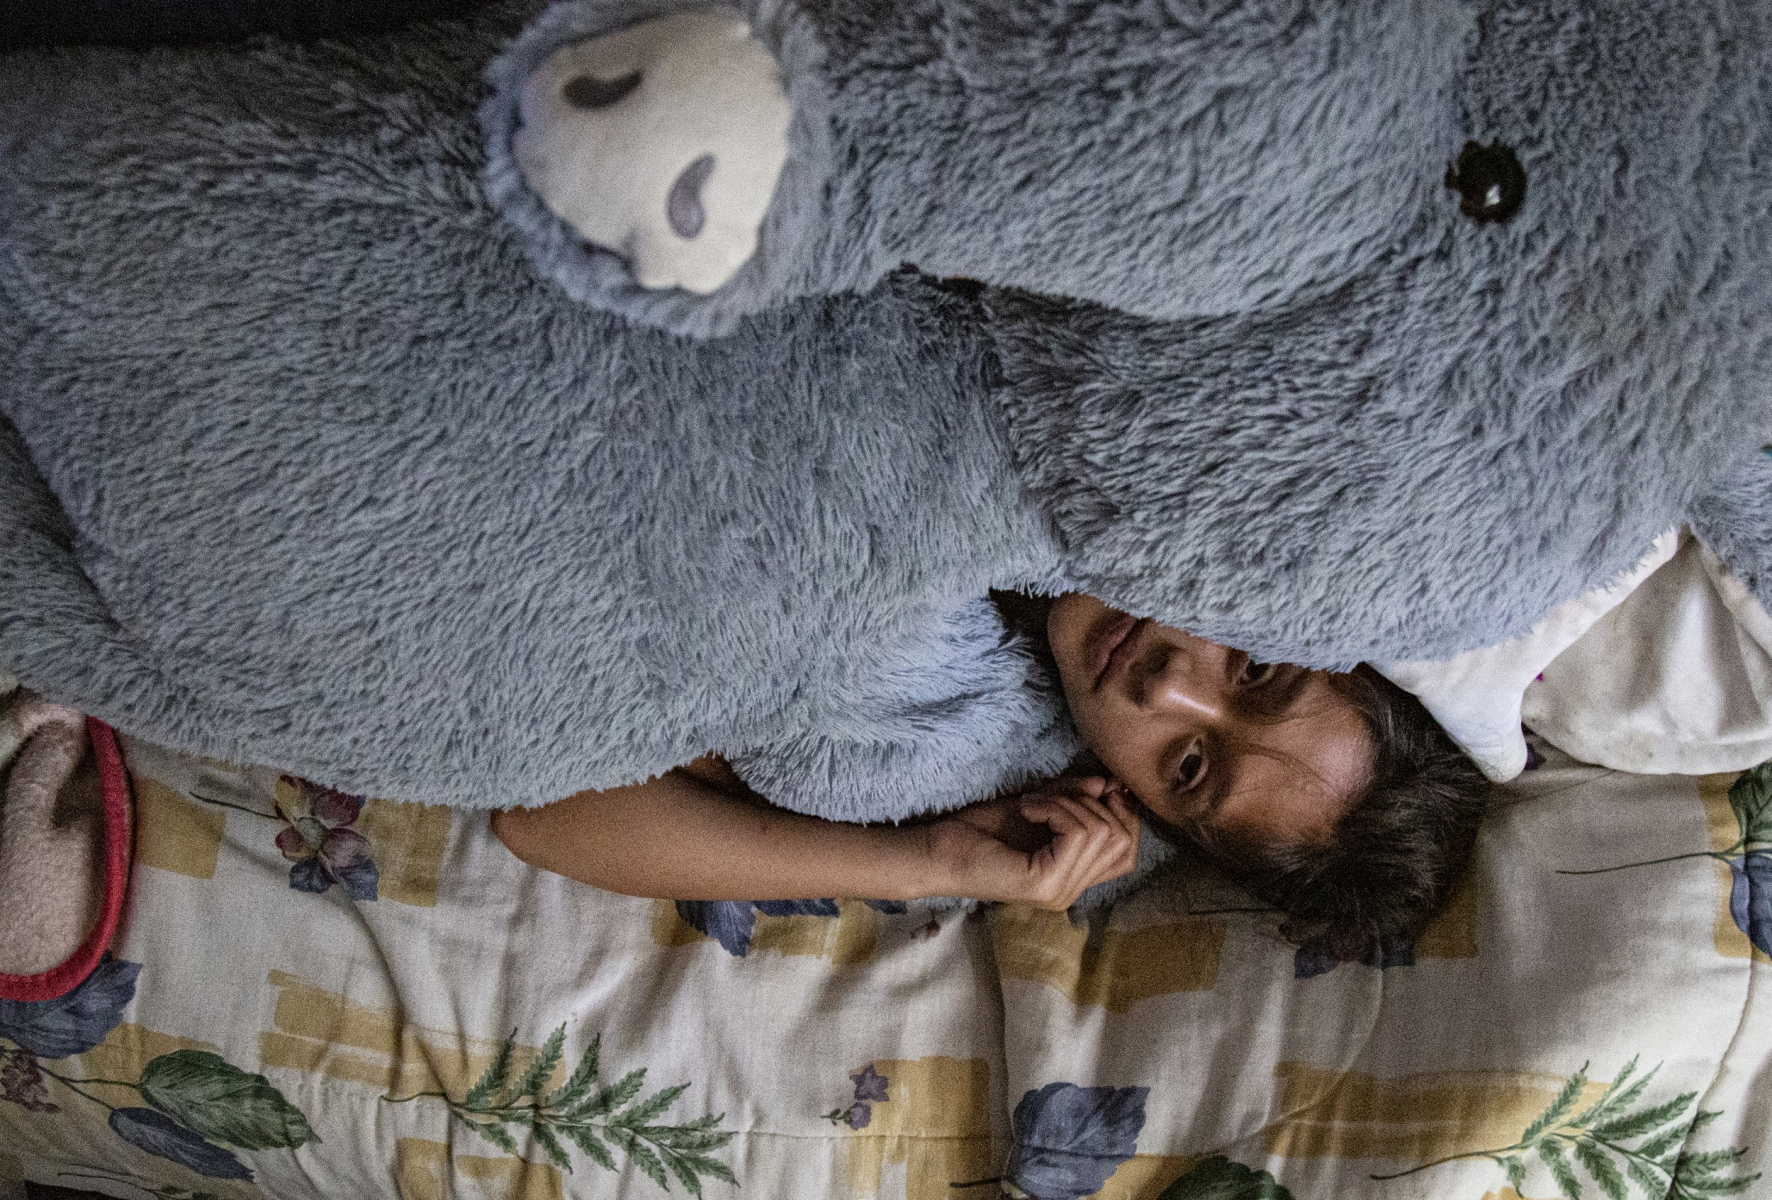 Camila lays on her bed with a giant stuffed animal, Sunday, Dec. 15, 2019 in Bradenton, Fla. Peace moves throughout the house but it is never silent. Sirens blare outside the window, people knock on the door and there is constant patter of feet across the tile floor. Sleep came during a few hours of stillness.